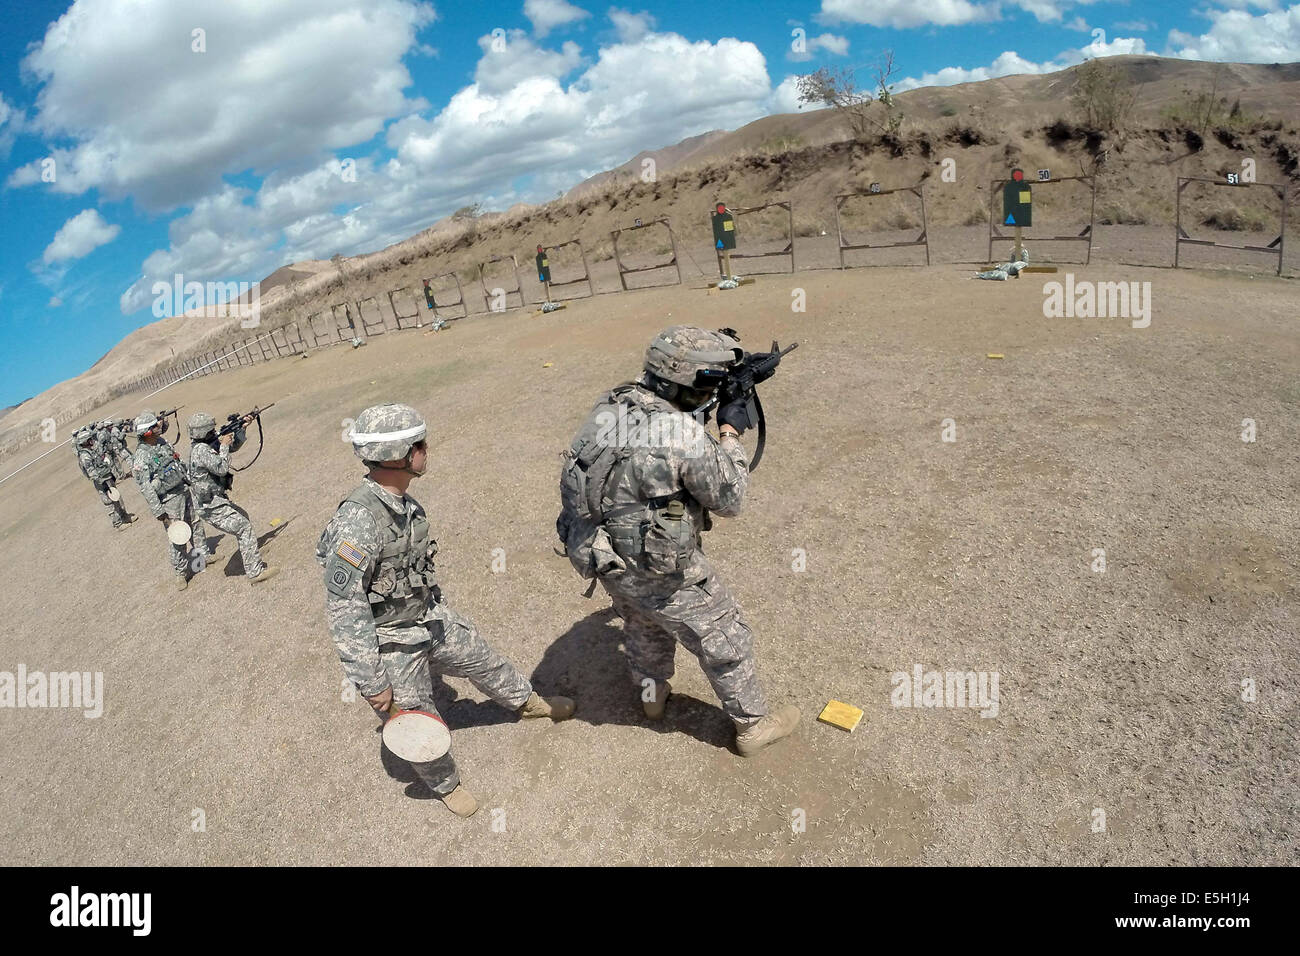 US Soldiers Assigned To The 1st Battalion 65th Infantry Regiment 92nd Maneuver Enhancement Brigade Puerto Rico Army Nation